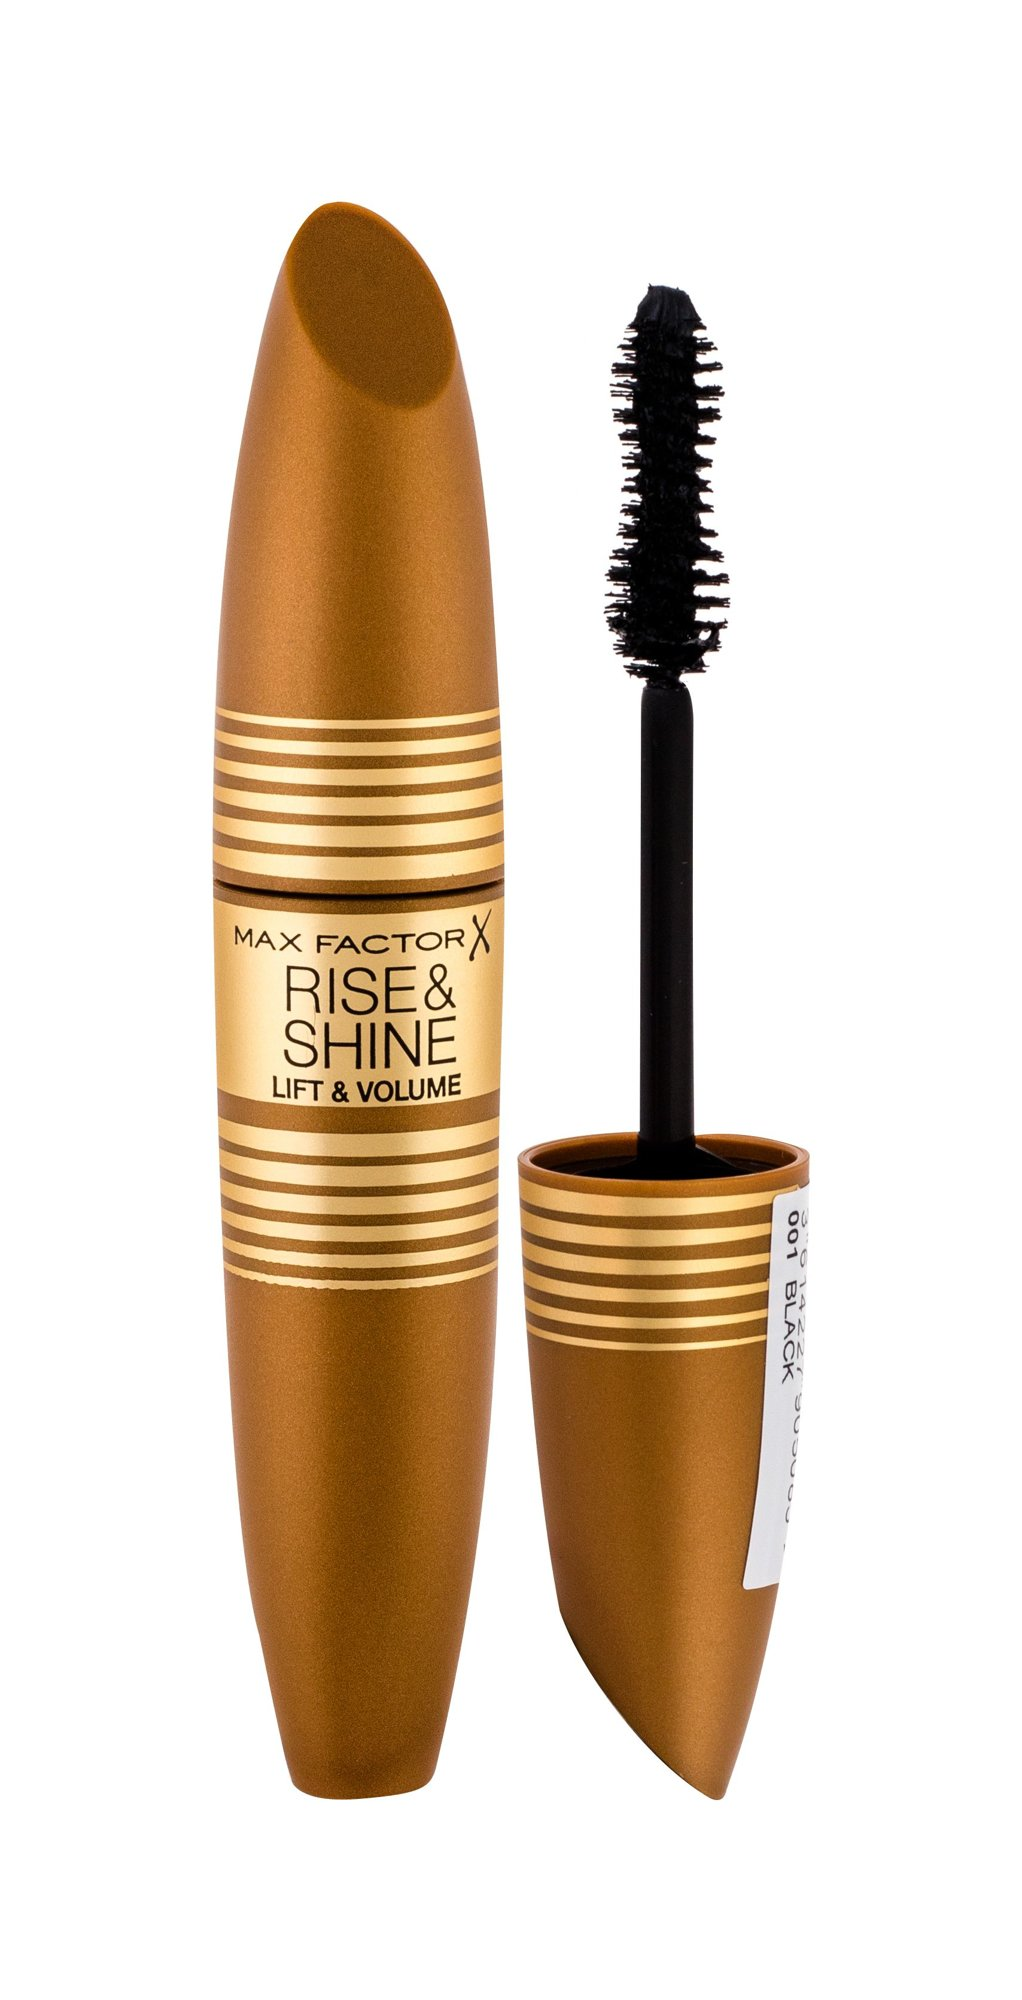 Max Factor Rise & Shine Mascara 12ml 001 Black